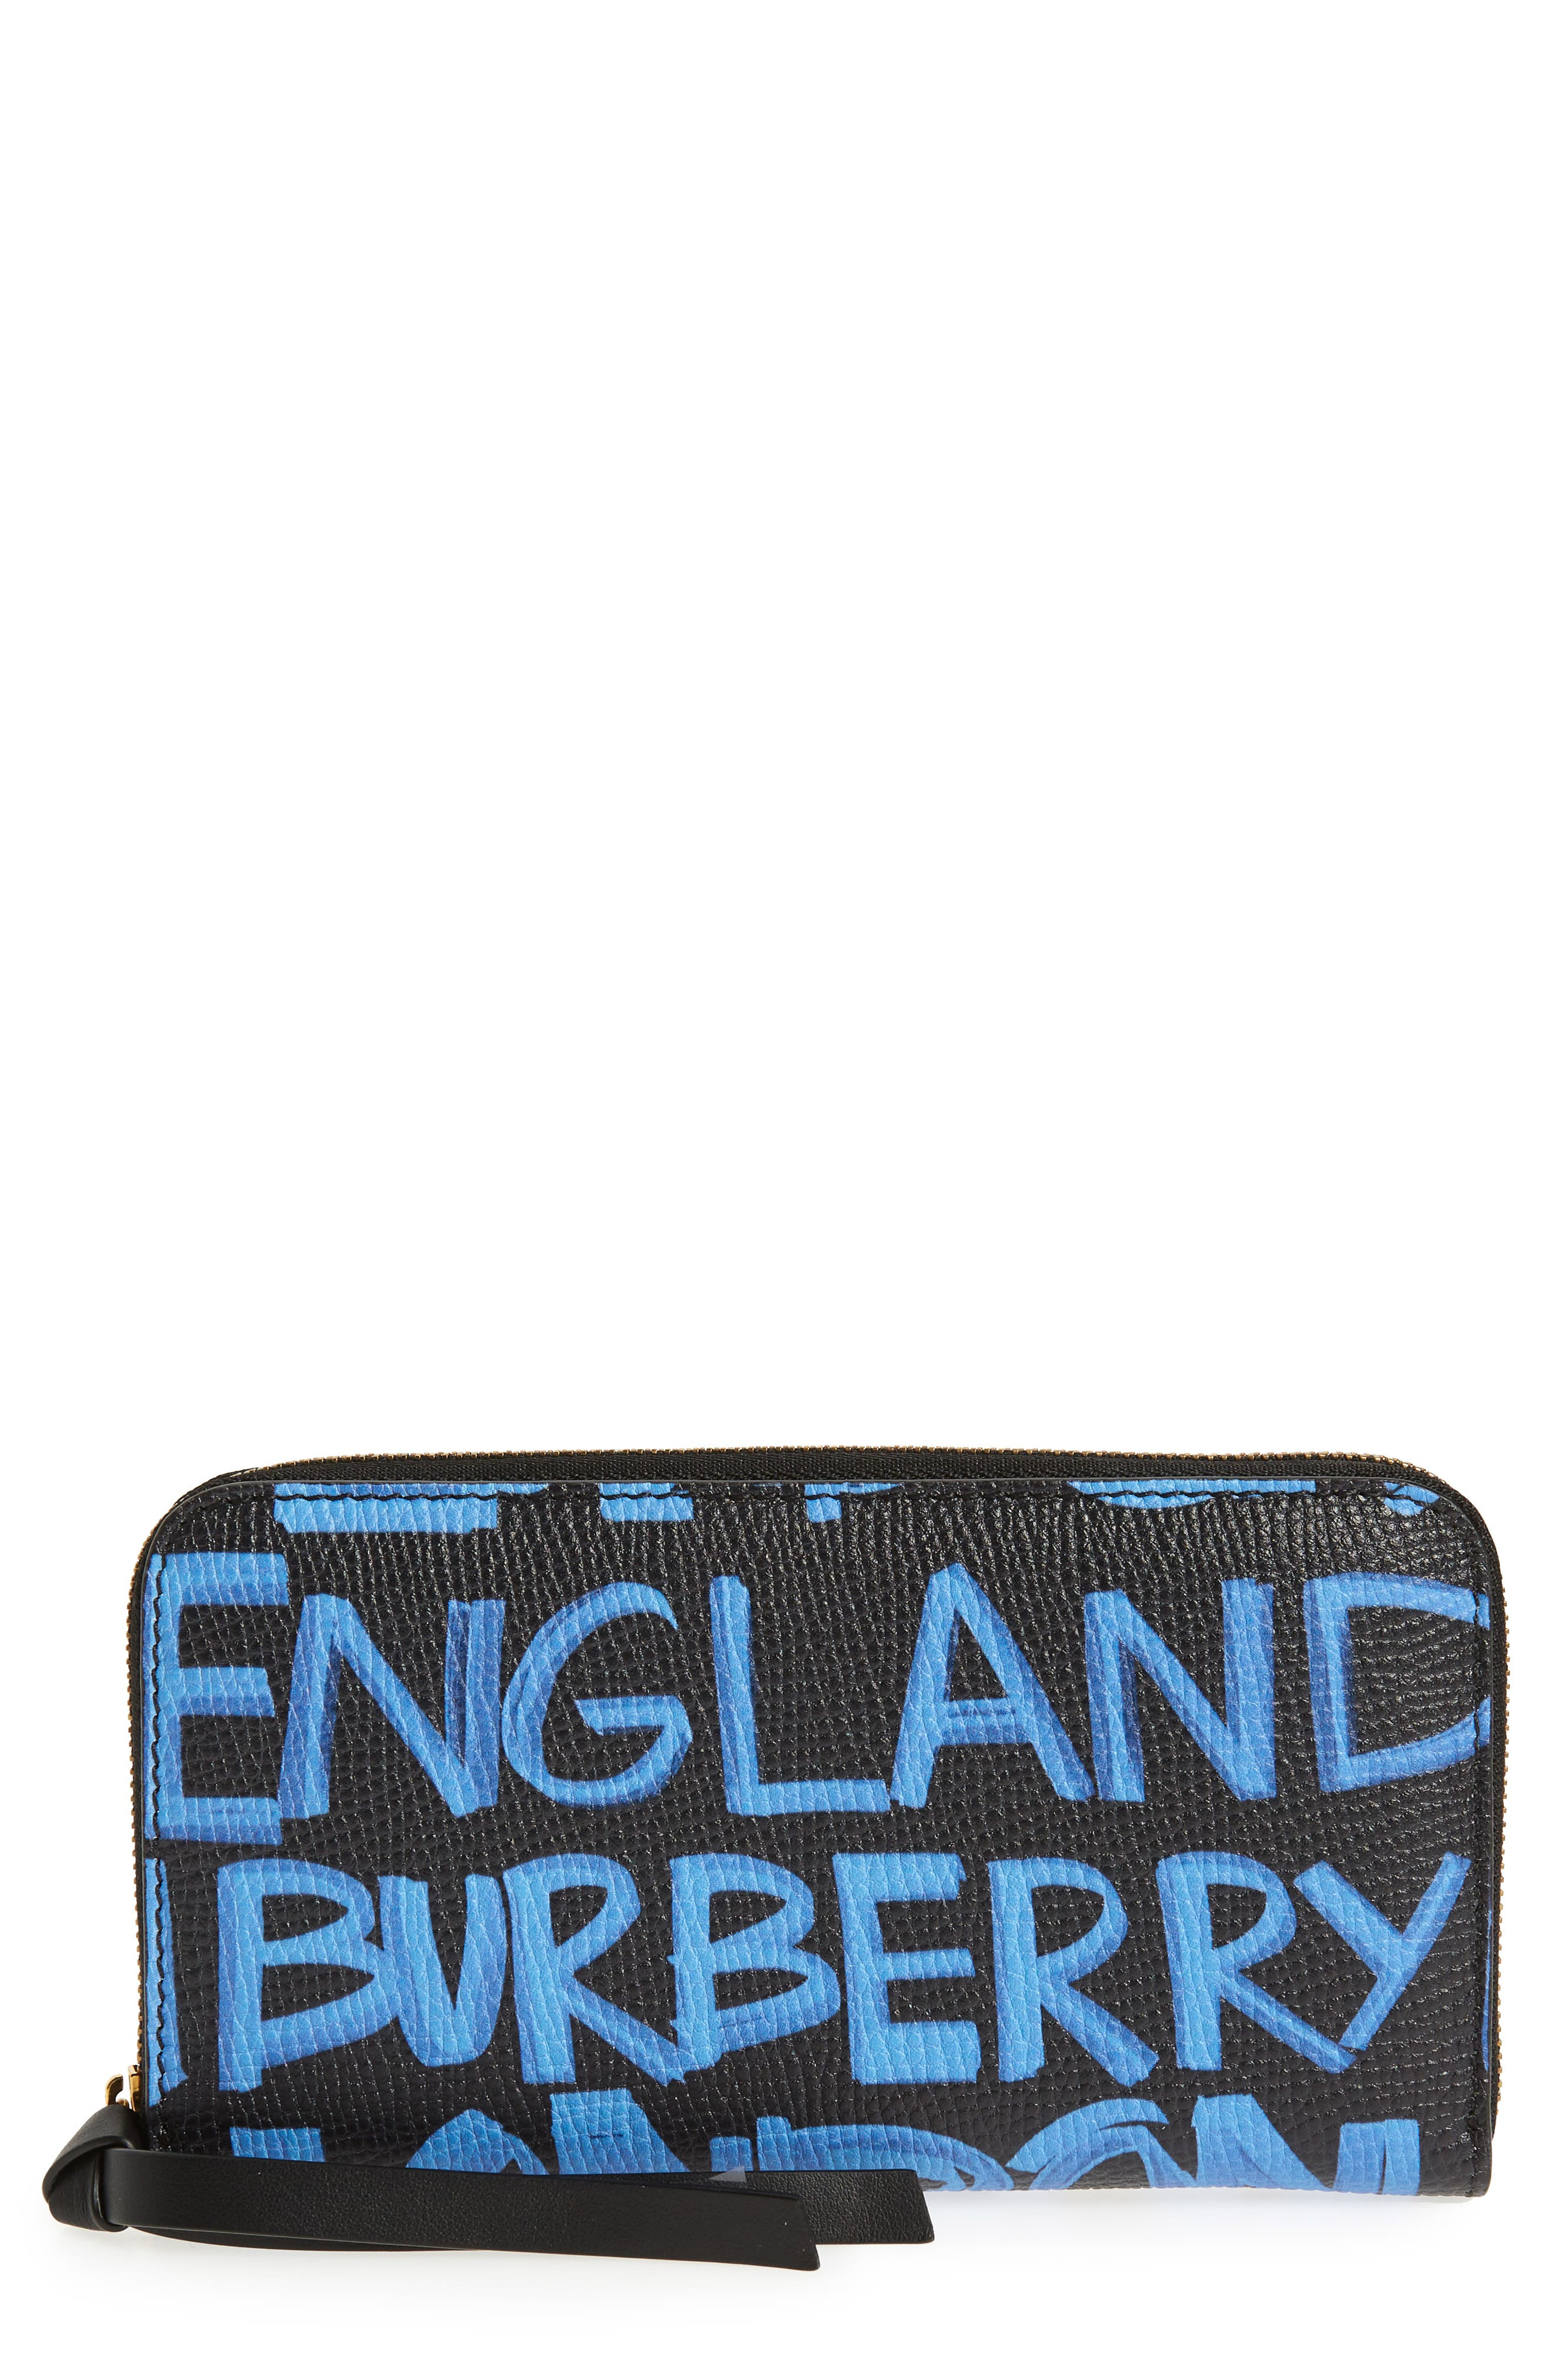 Free Shipping Manchester Great Sale Burberry Graffiti Print Leather Ziparound Wallet Buy Cheap Purchase Cheap Enjoy Clearance Sale qovlGk